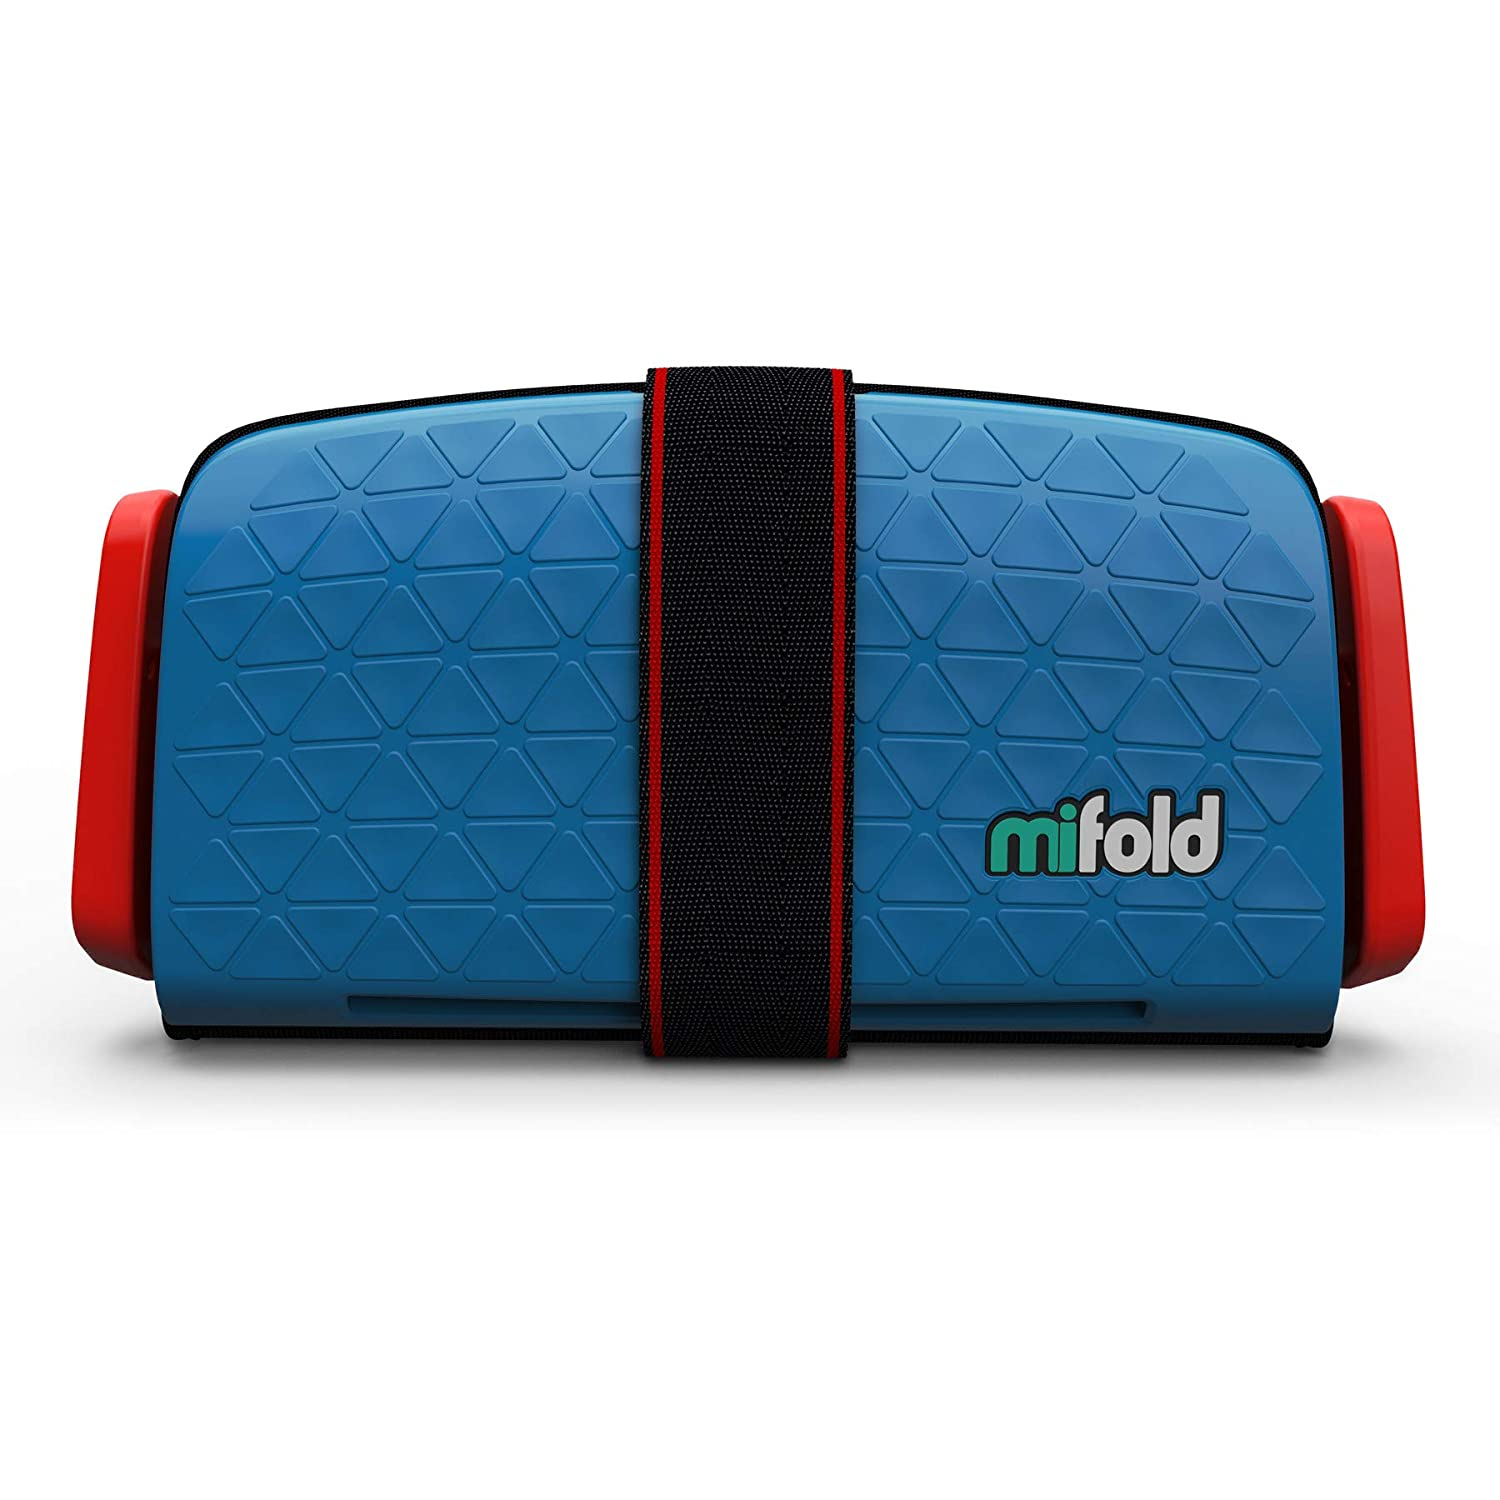 mifold Mifold Booster, Denim Blue MF01CDBL